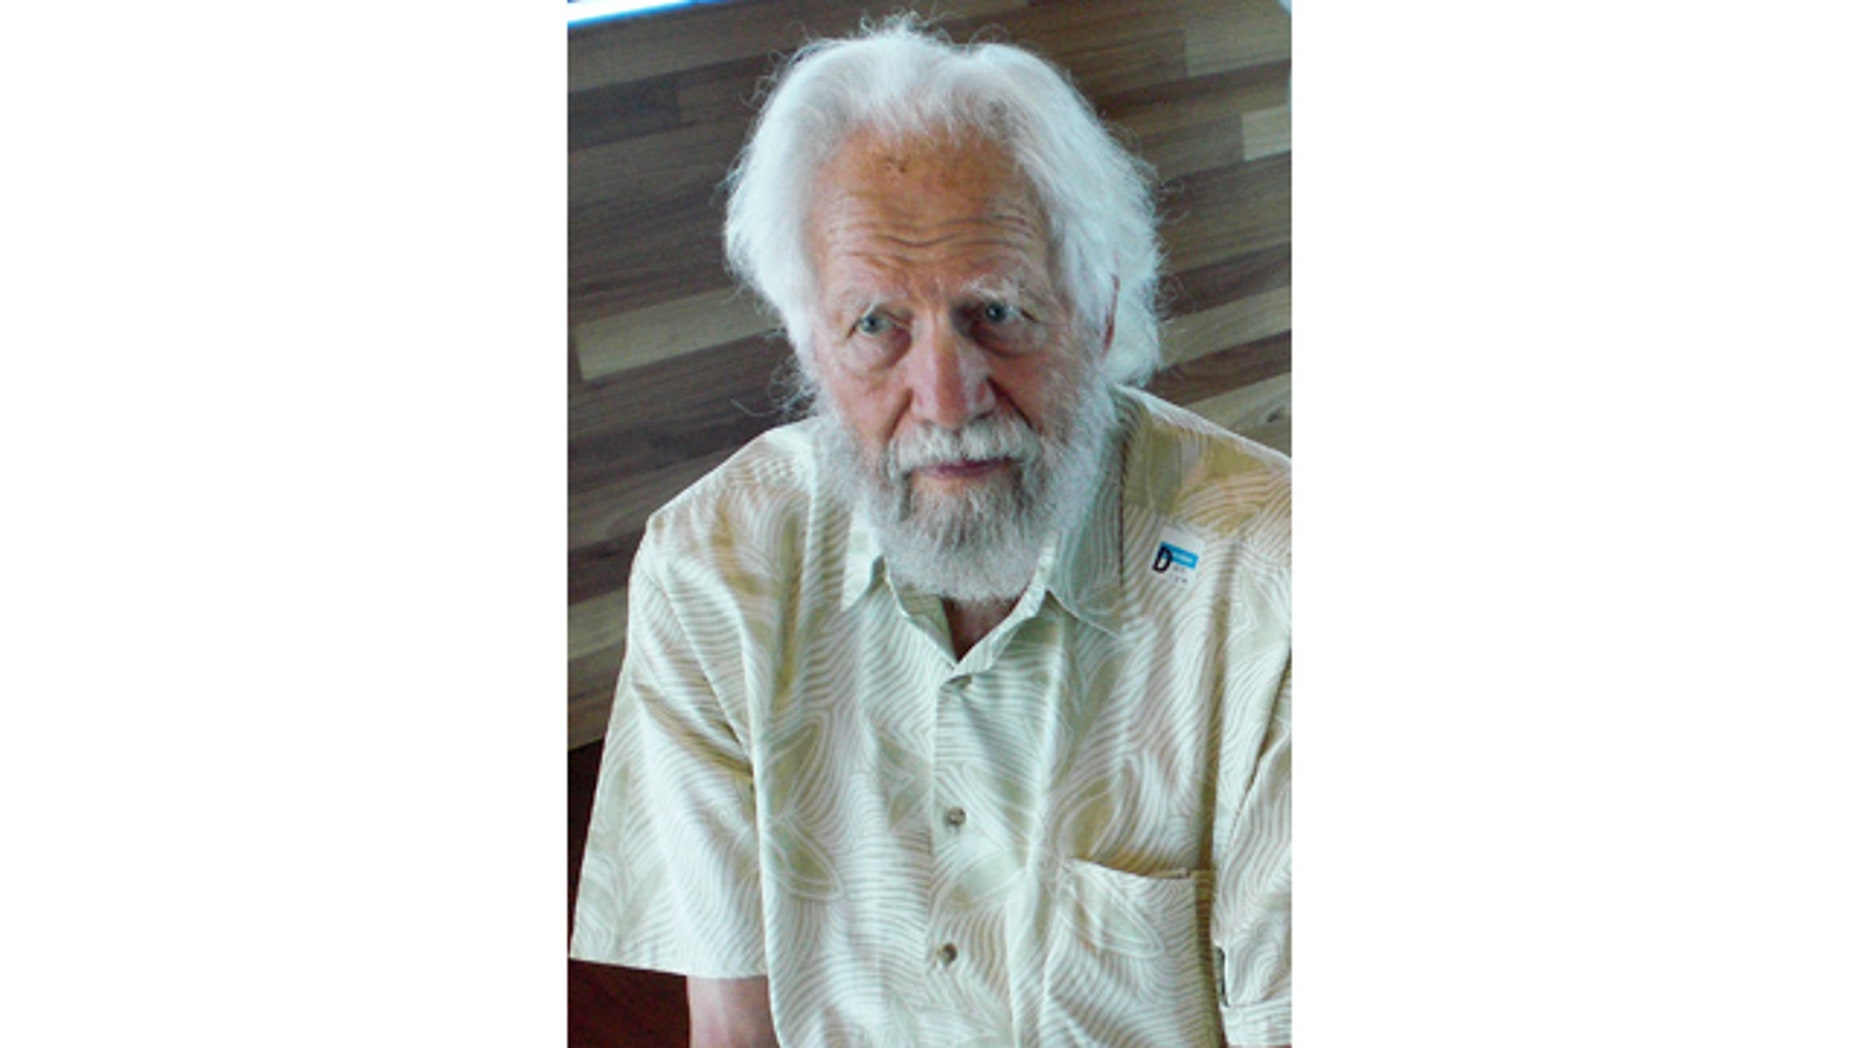 September 6, 2008: This photo released by Greg Manning shows Alexander Shulgin in San Francisco. Shulgin, a respected chemist famed for dusting off a decades-old recipe for the psychedelic drug ecstasy, died Monday, June 3, 2014, at his Northern California home. He was 88. (AP Photo/Greg Manning)